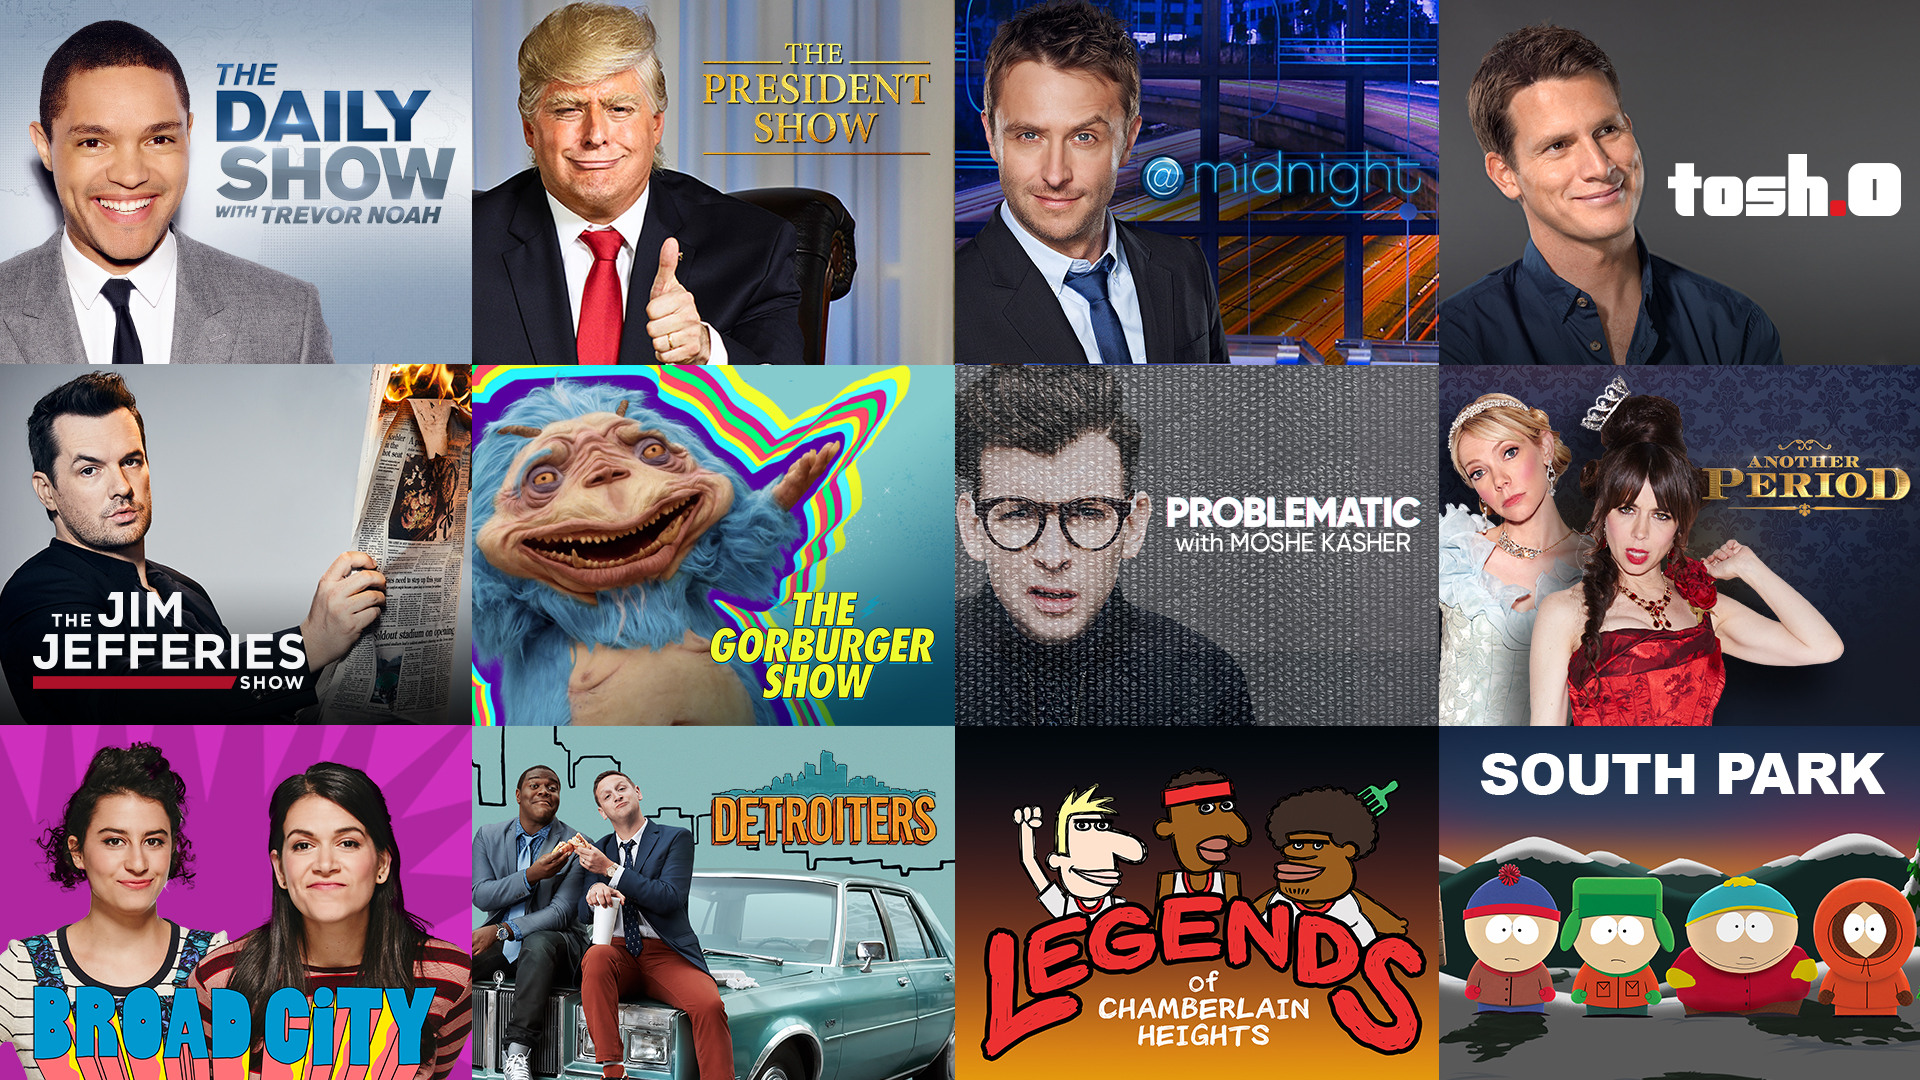 DOWNLOAD THE COMEDY CENTRAL APP